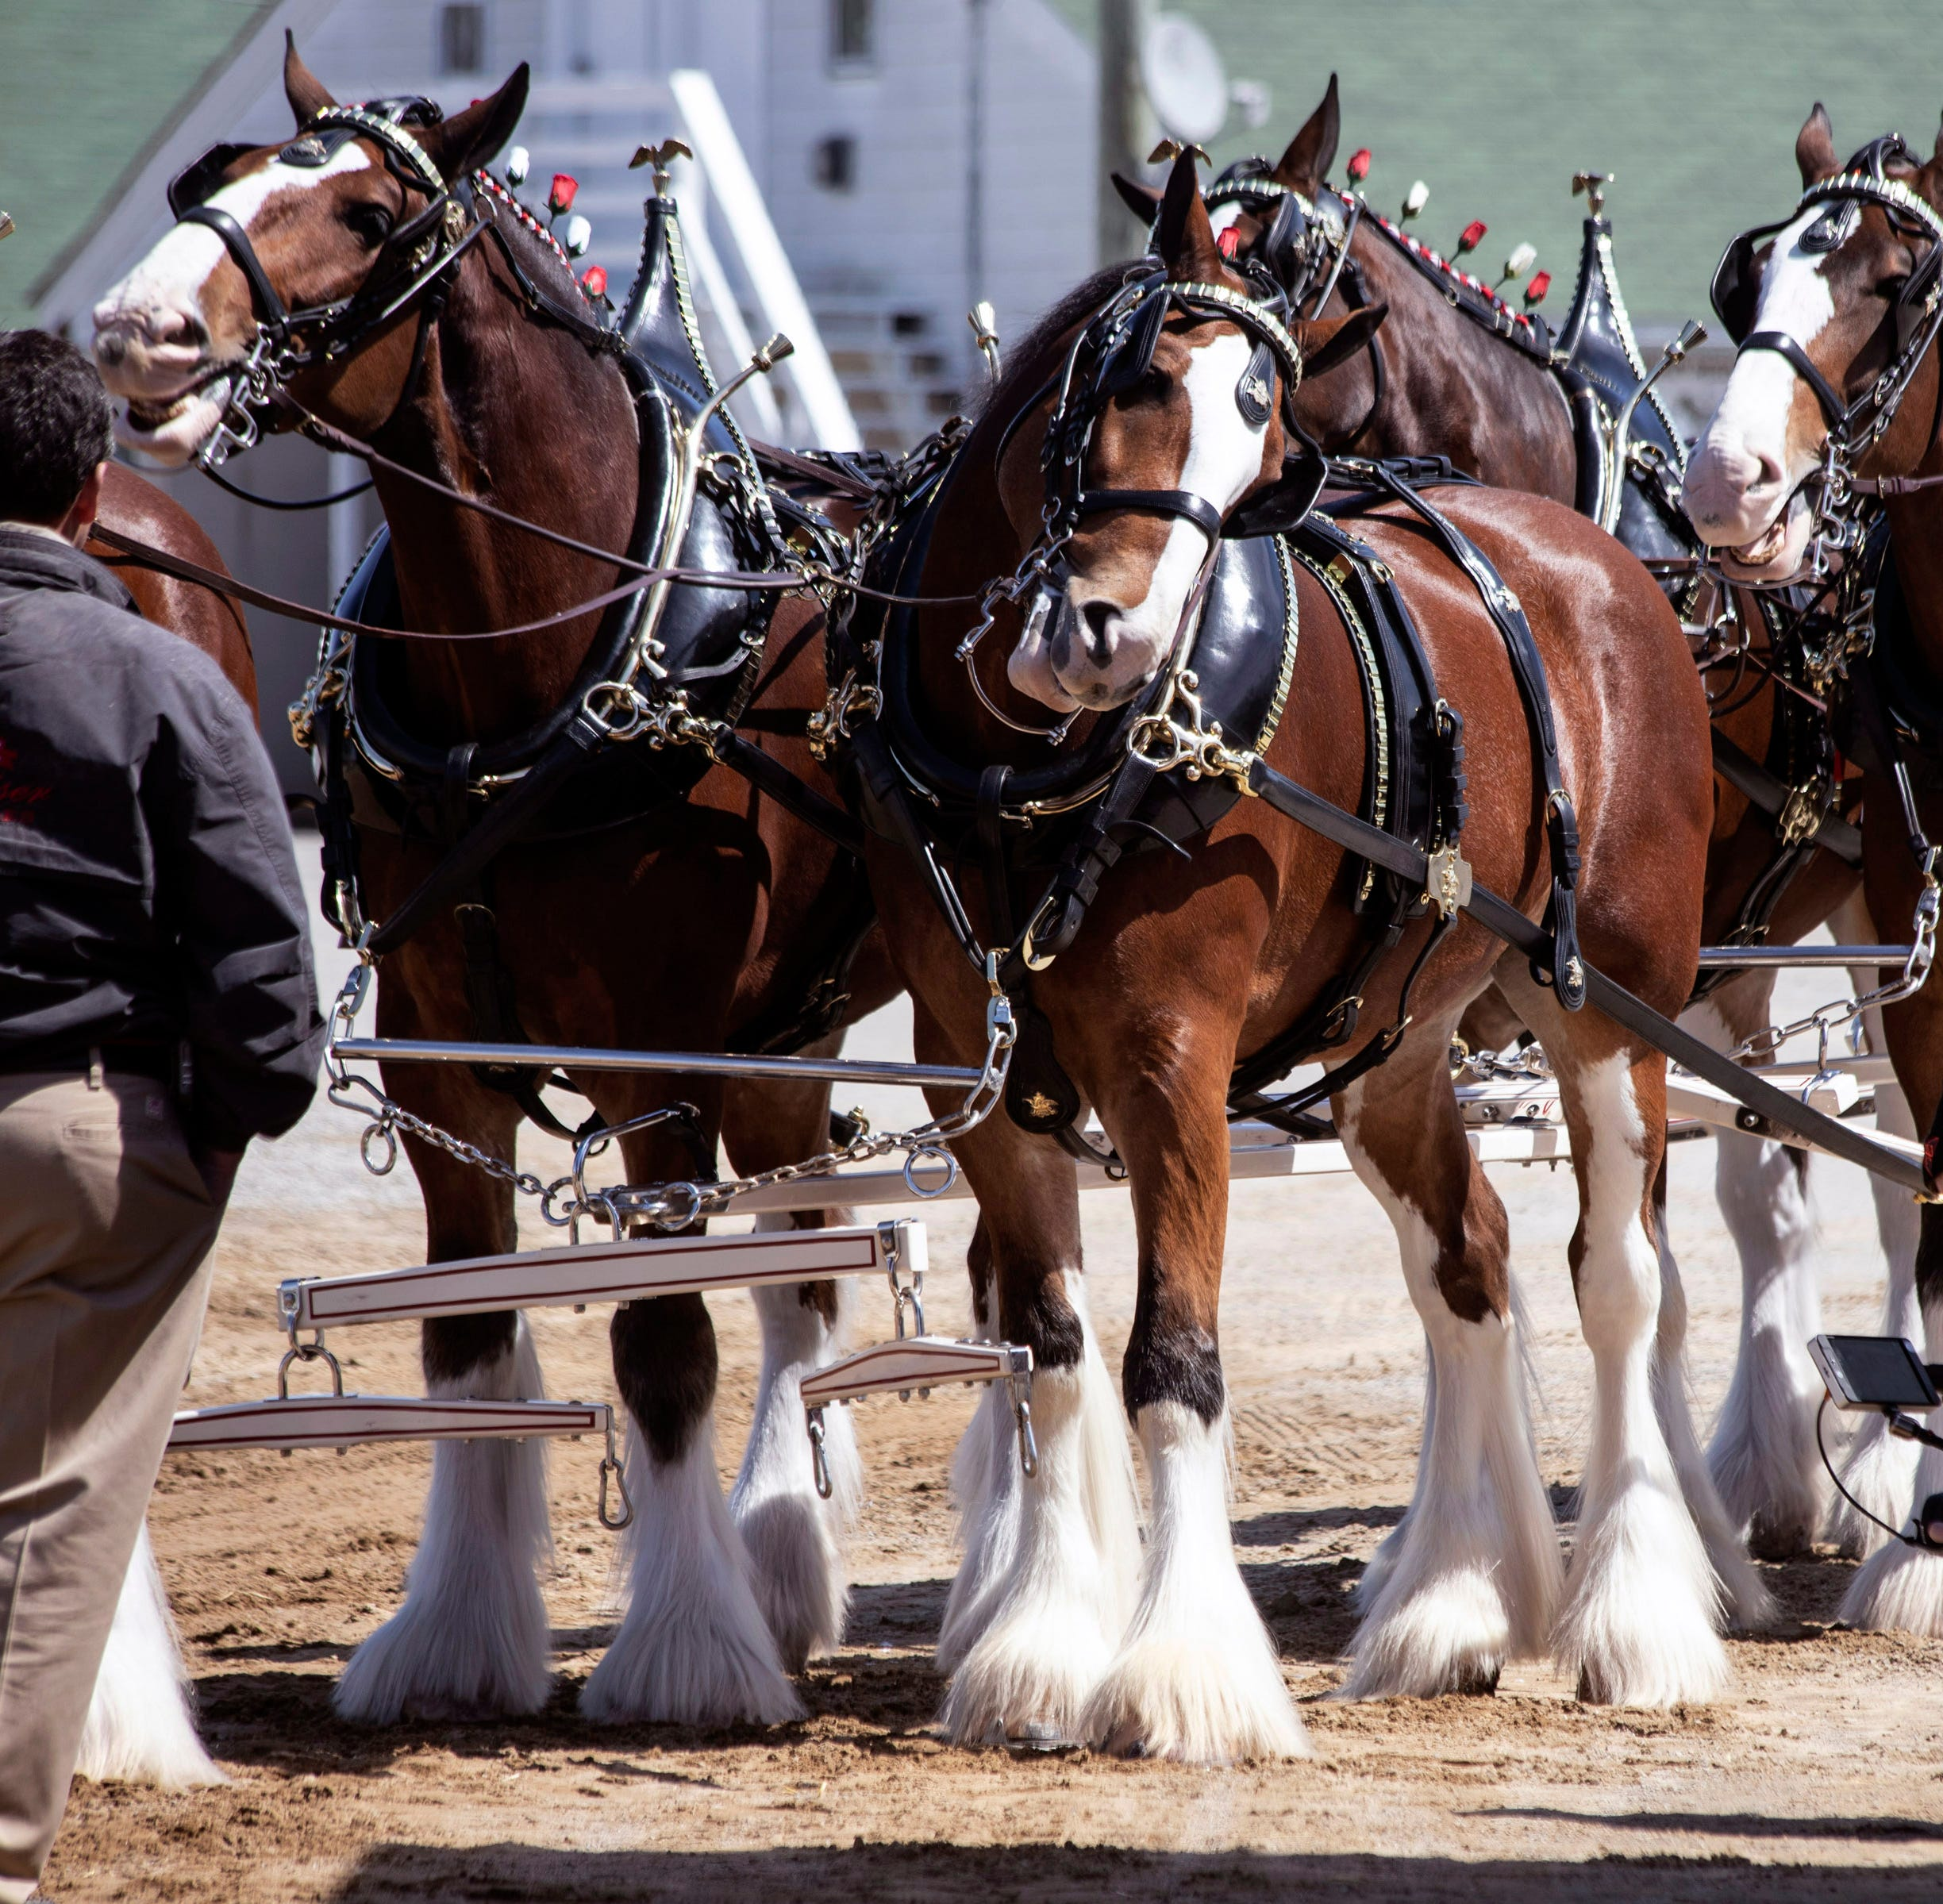 Down the stretch at Churchill Downs comes ... the Budweiser Clydesdales?!?